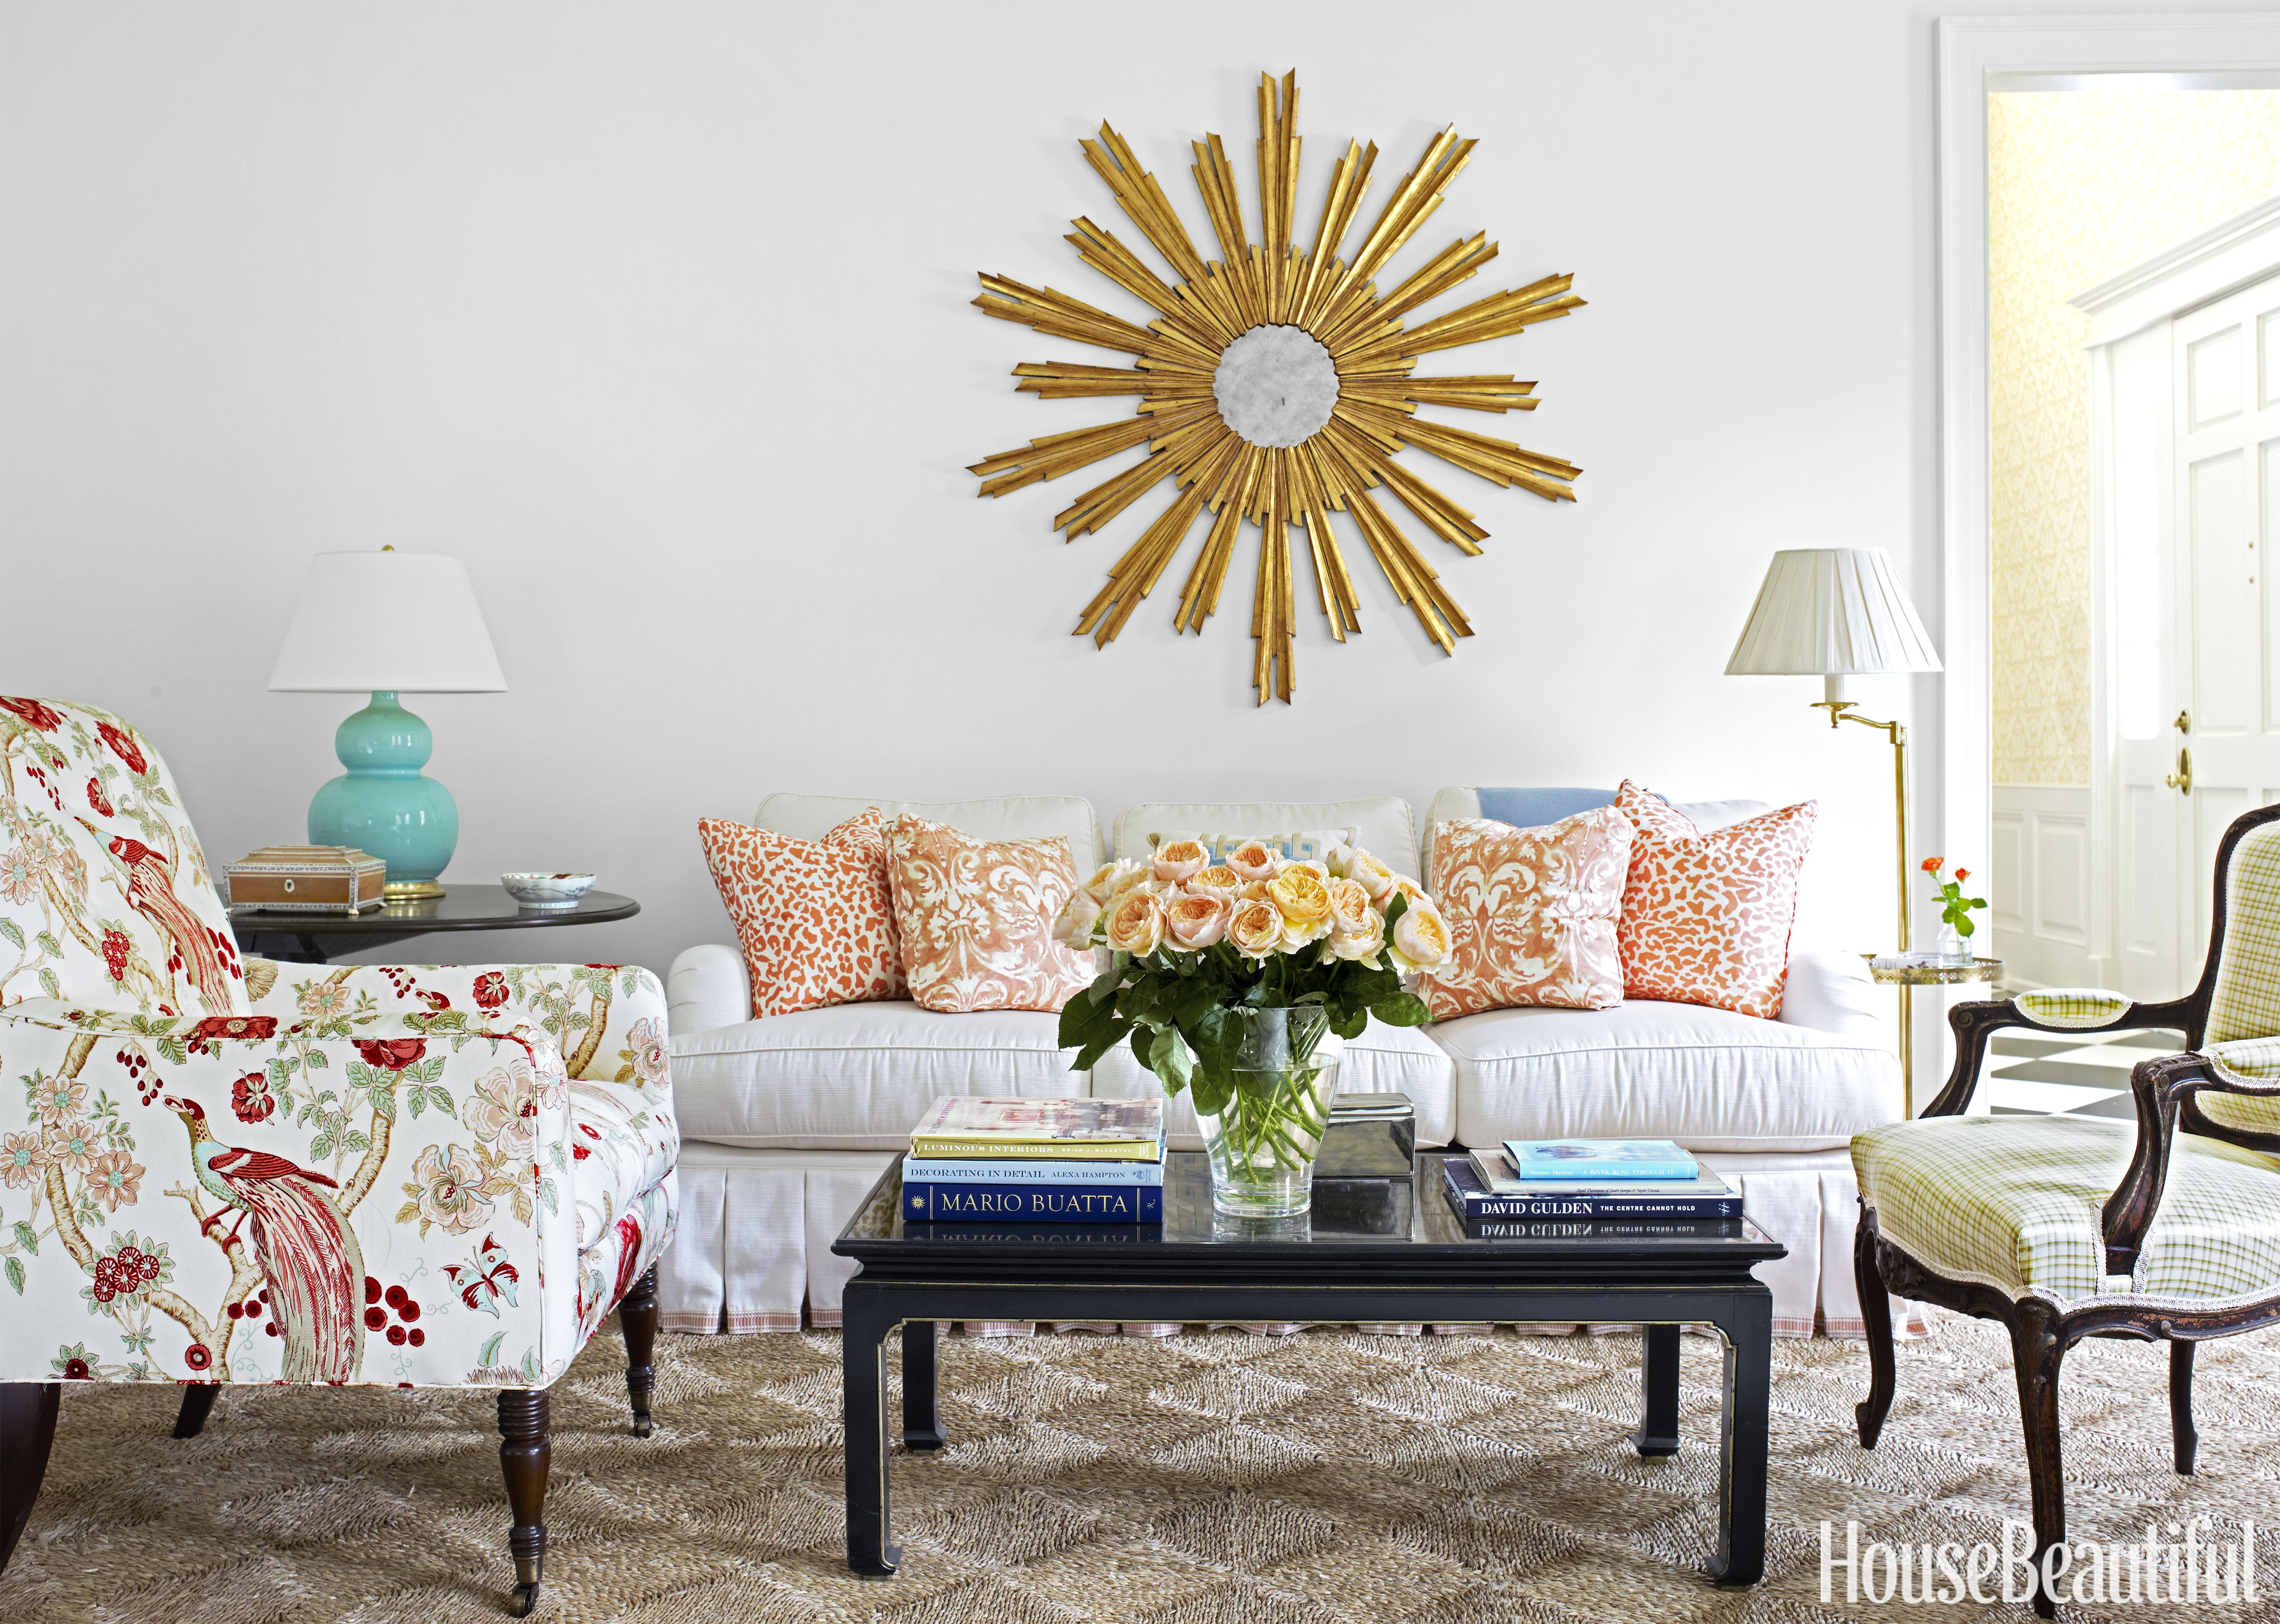 52 Best Interior Decorating Secrets - Decorating Tips and Tricks from the  Pros